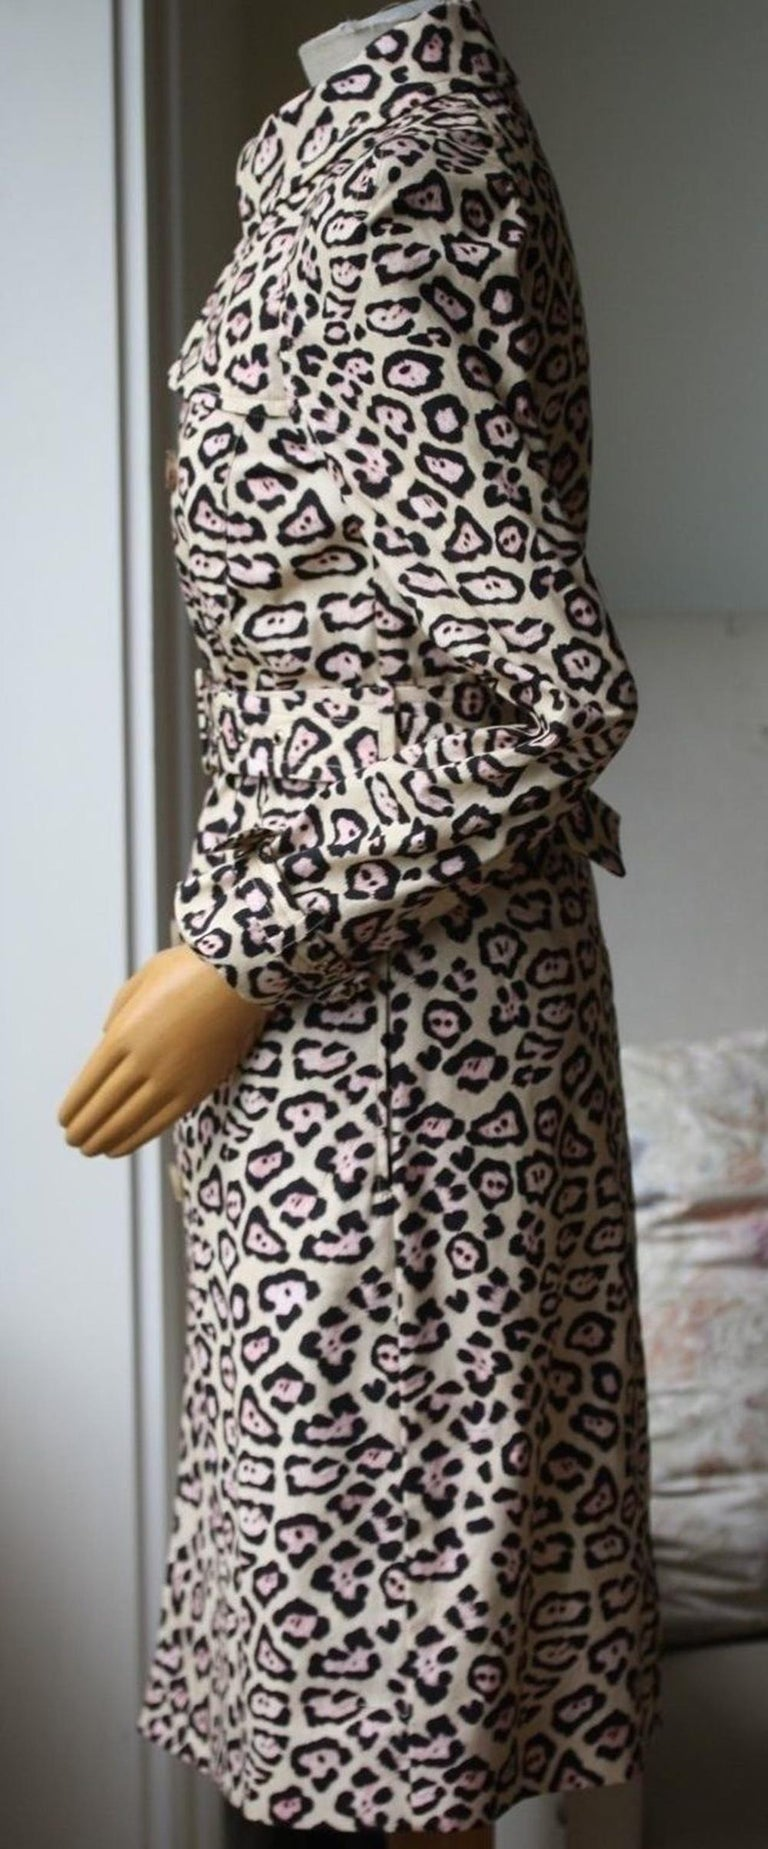 Beige Givenchy Oversized Leopard-Print Trench Coat For Sale